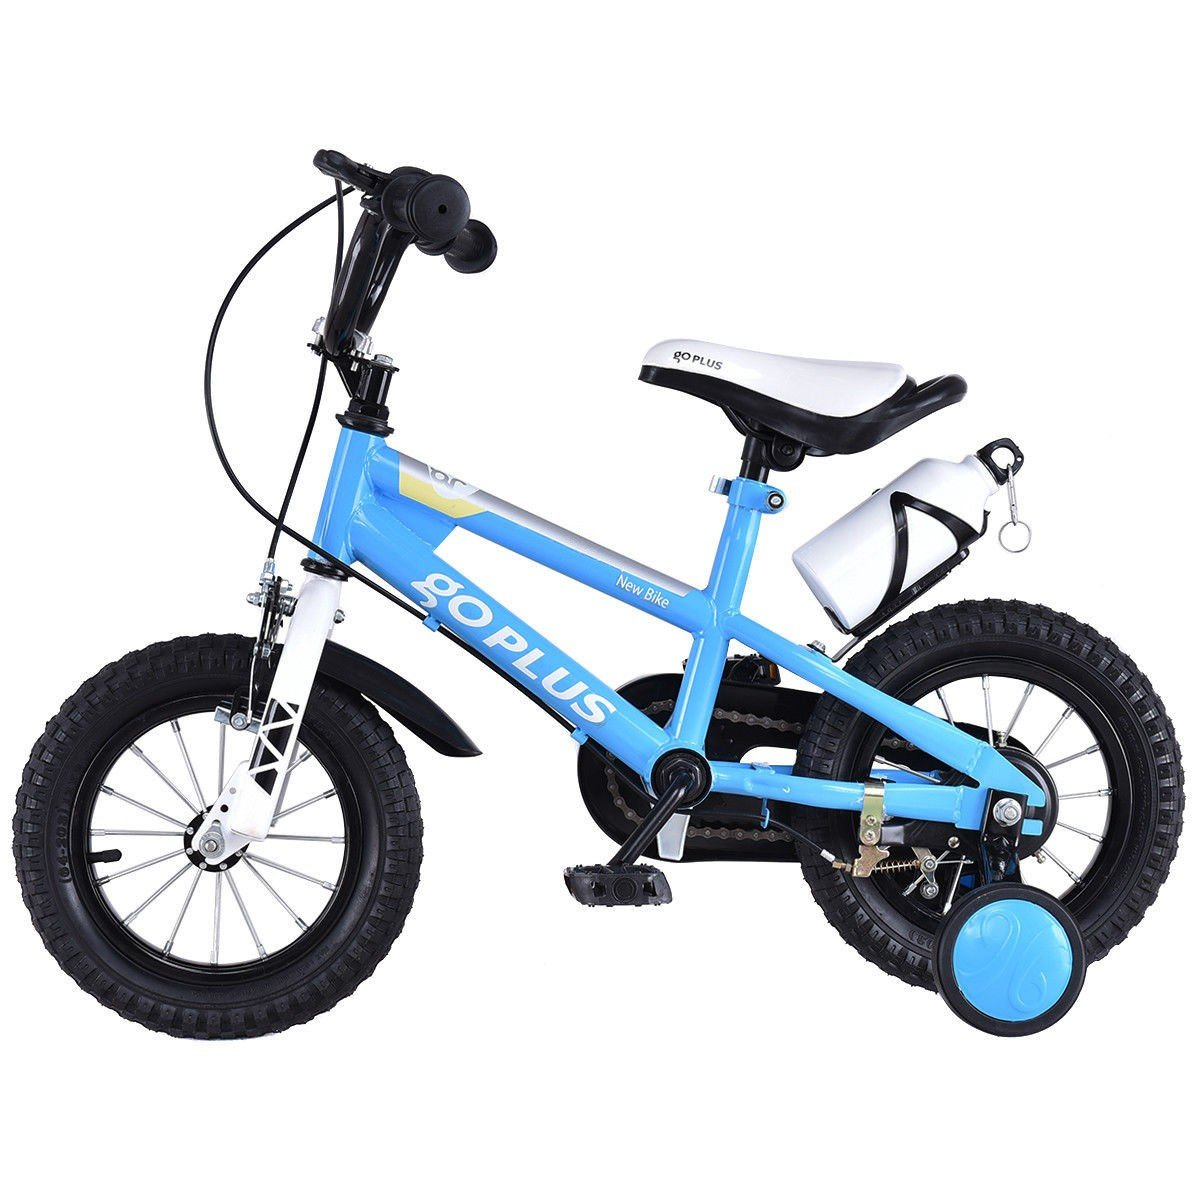 MD Group Kids Bicycle 20'' Adjustable Freestyle Boys & Girls Blue Metal w/ Training Wheels by MD Group (Image #2)